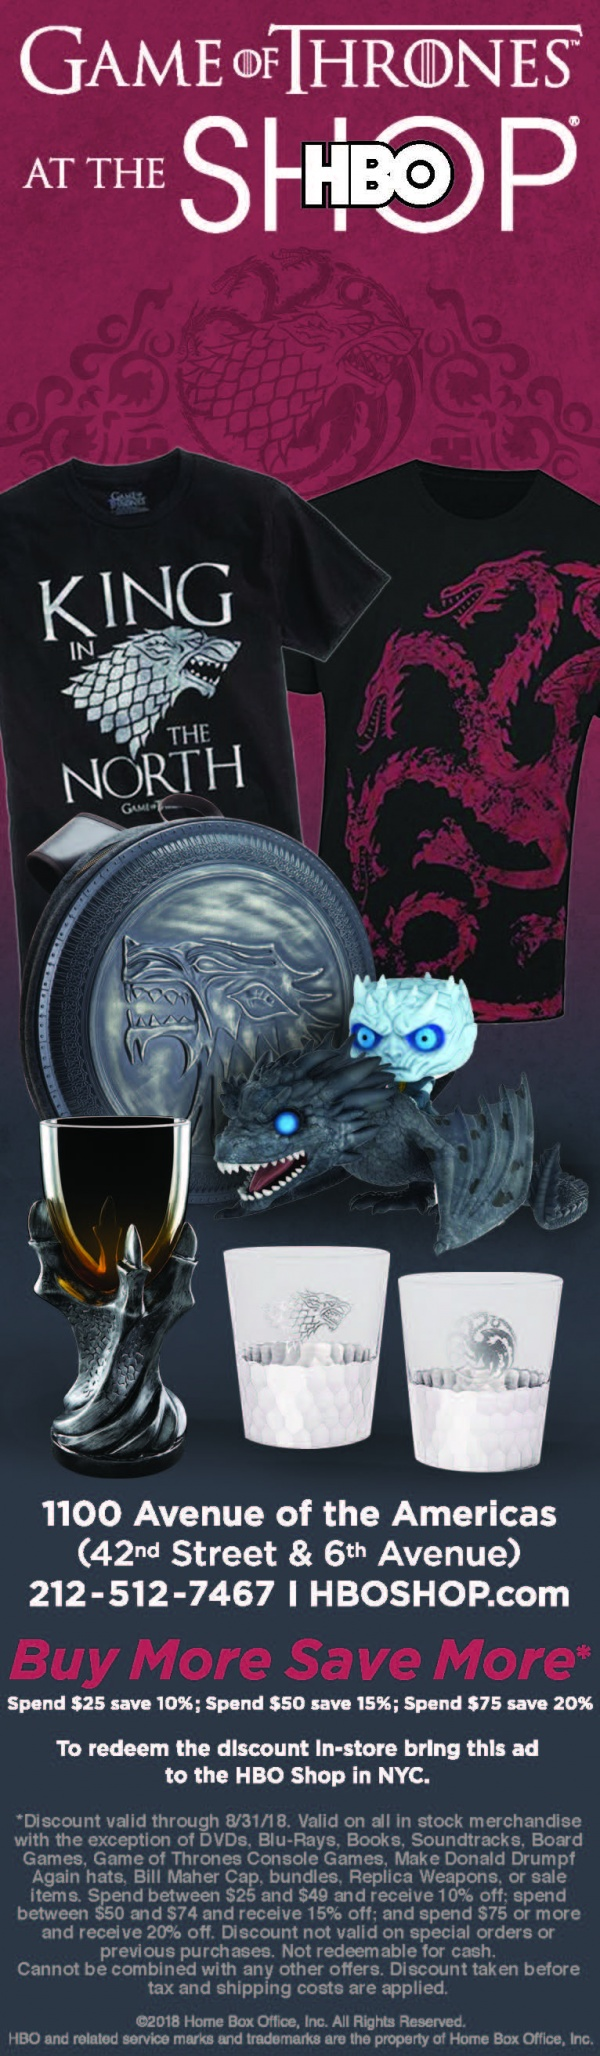 game of thrones hbo shop coupon